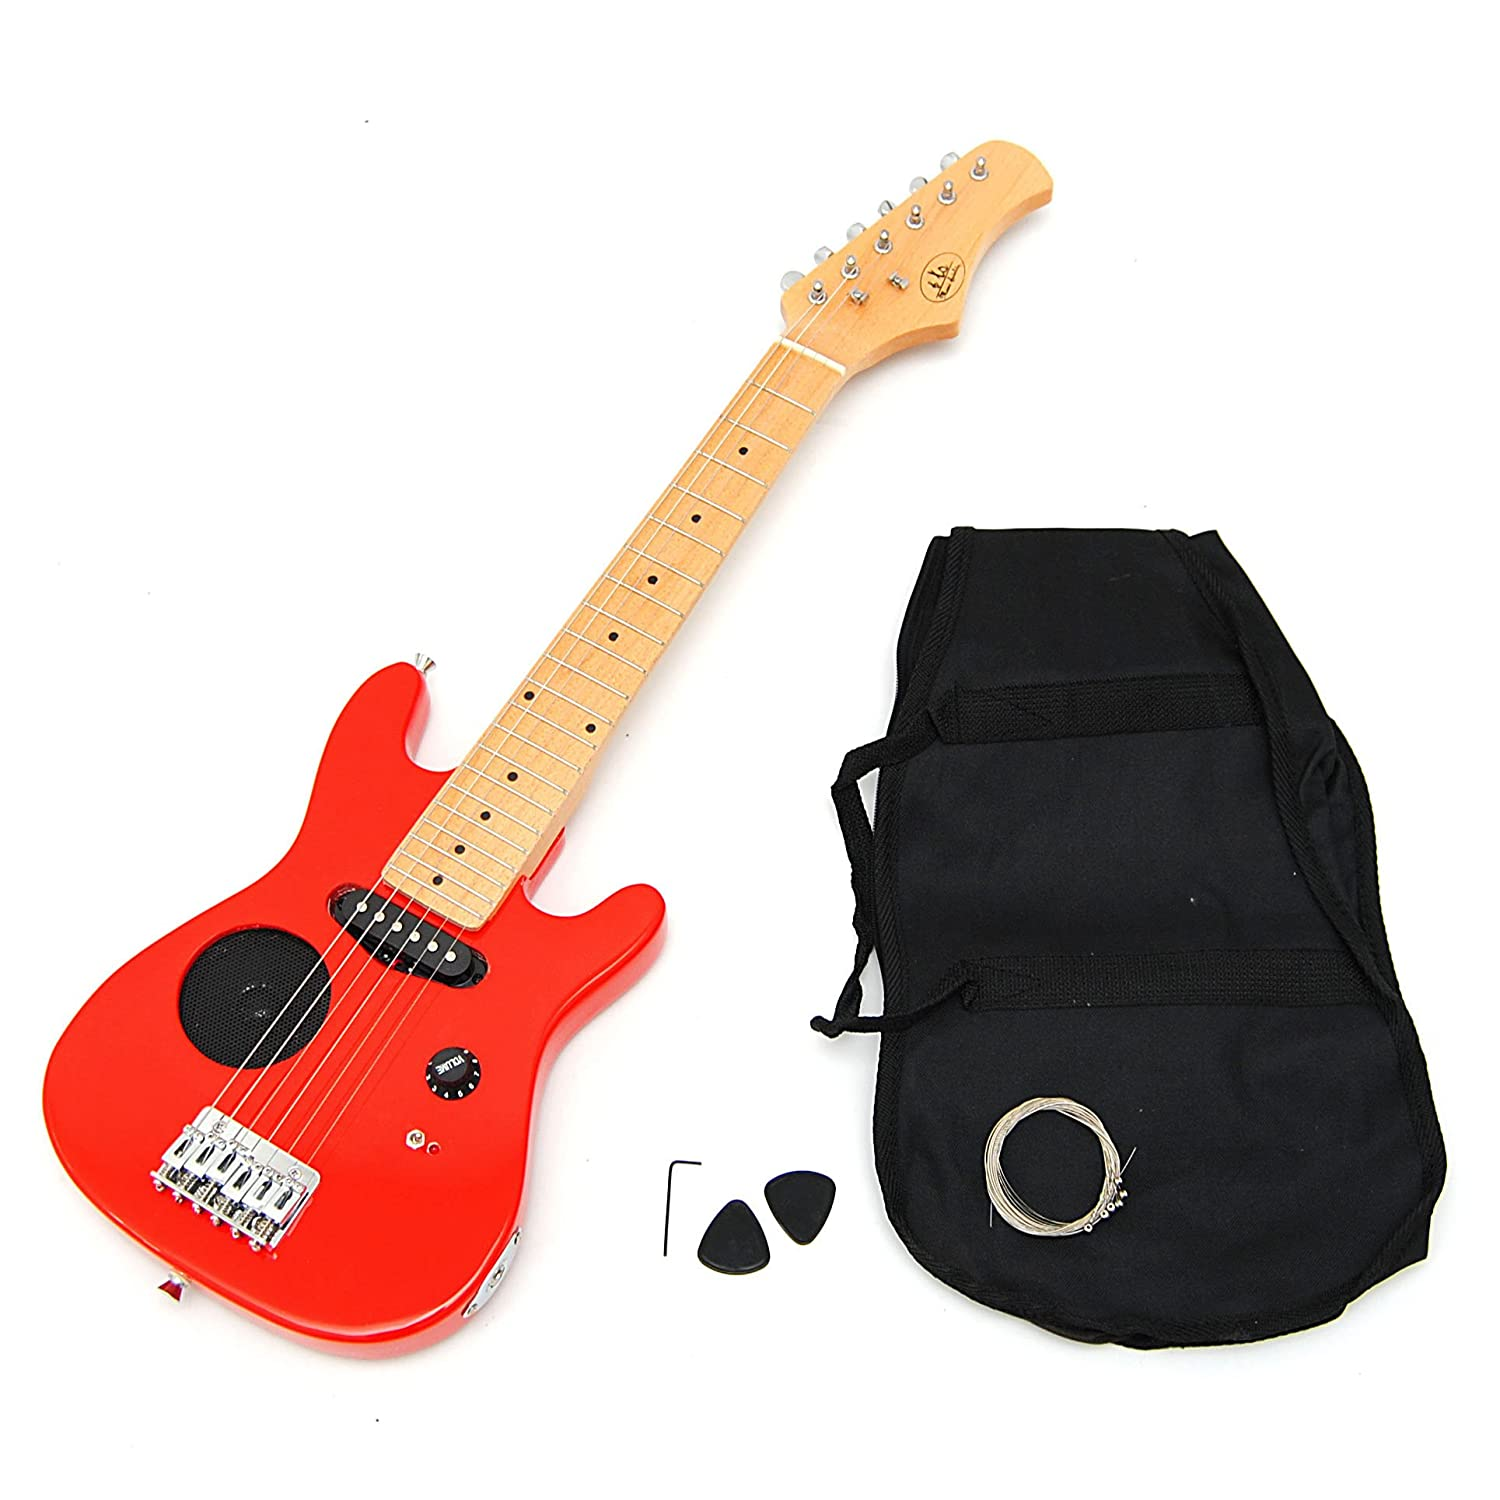 ts ideen 1 4 Kids electric guitar for children in red Speaker Bag